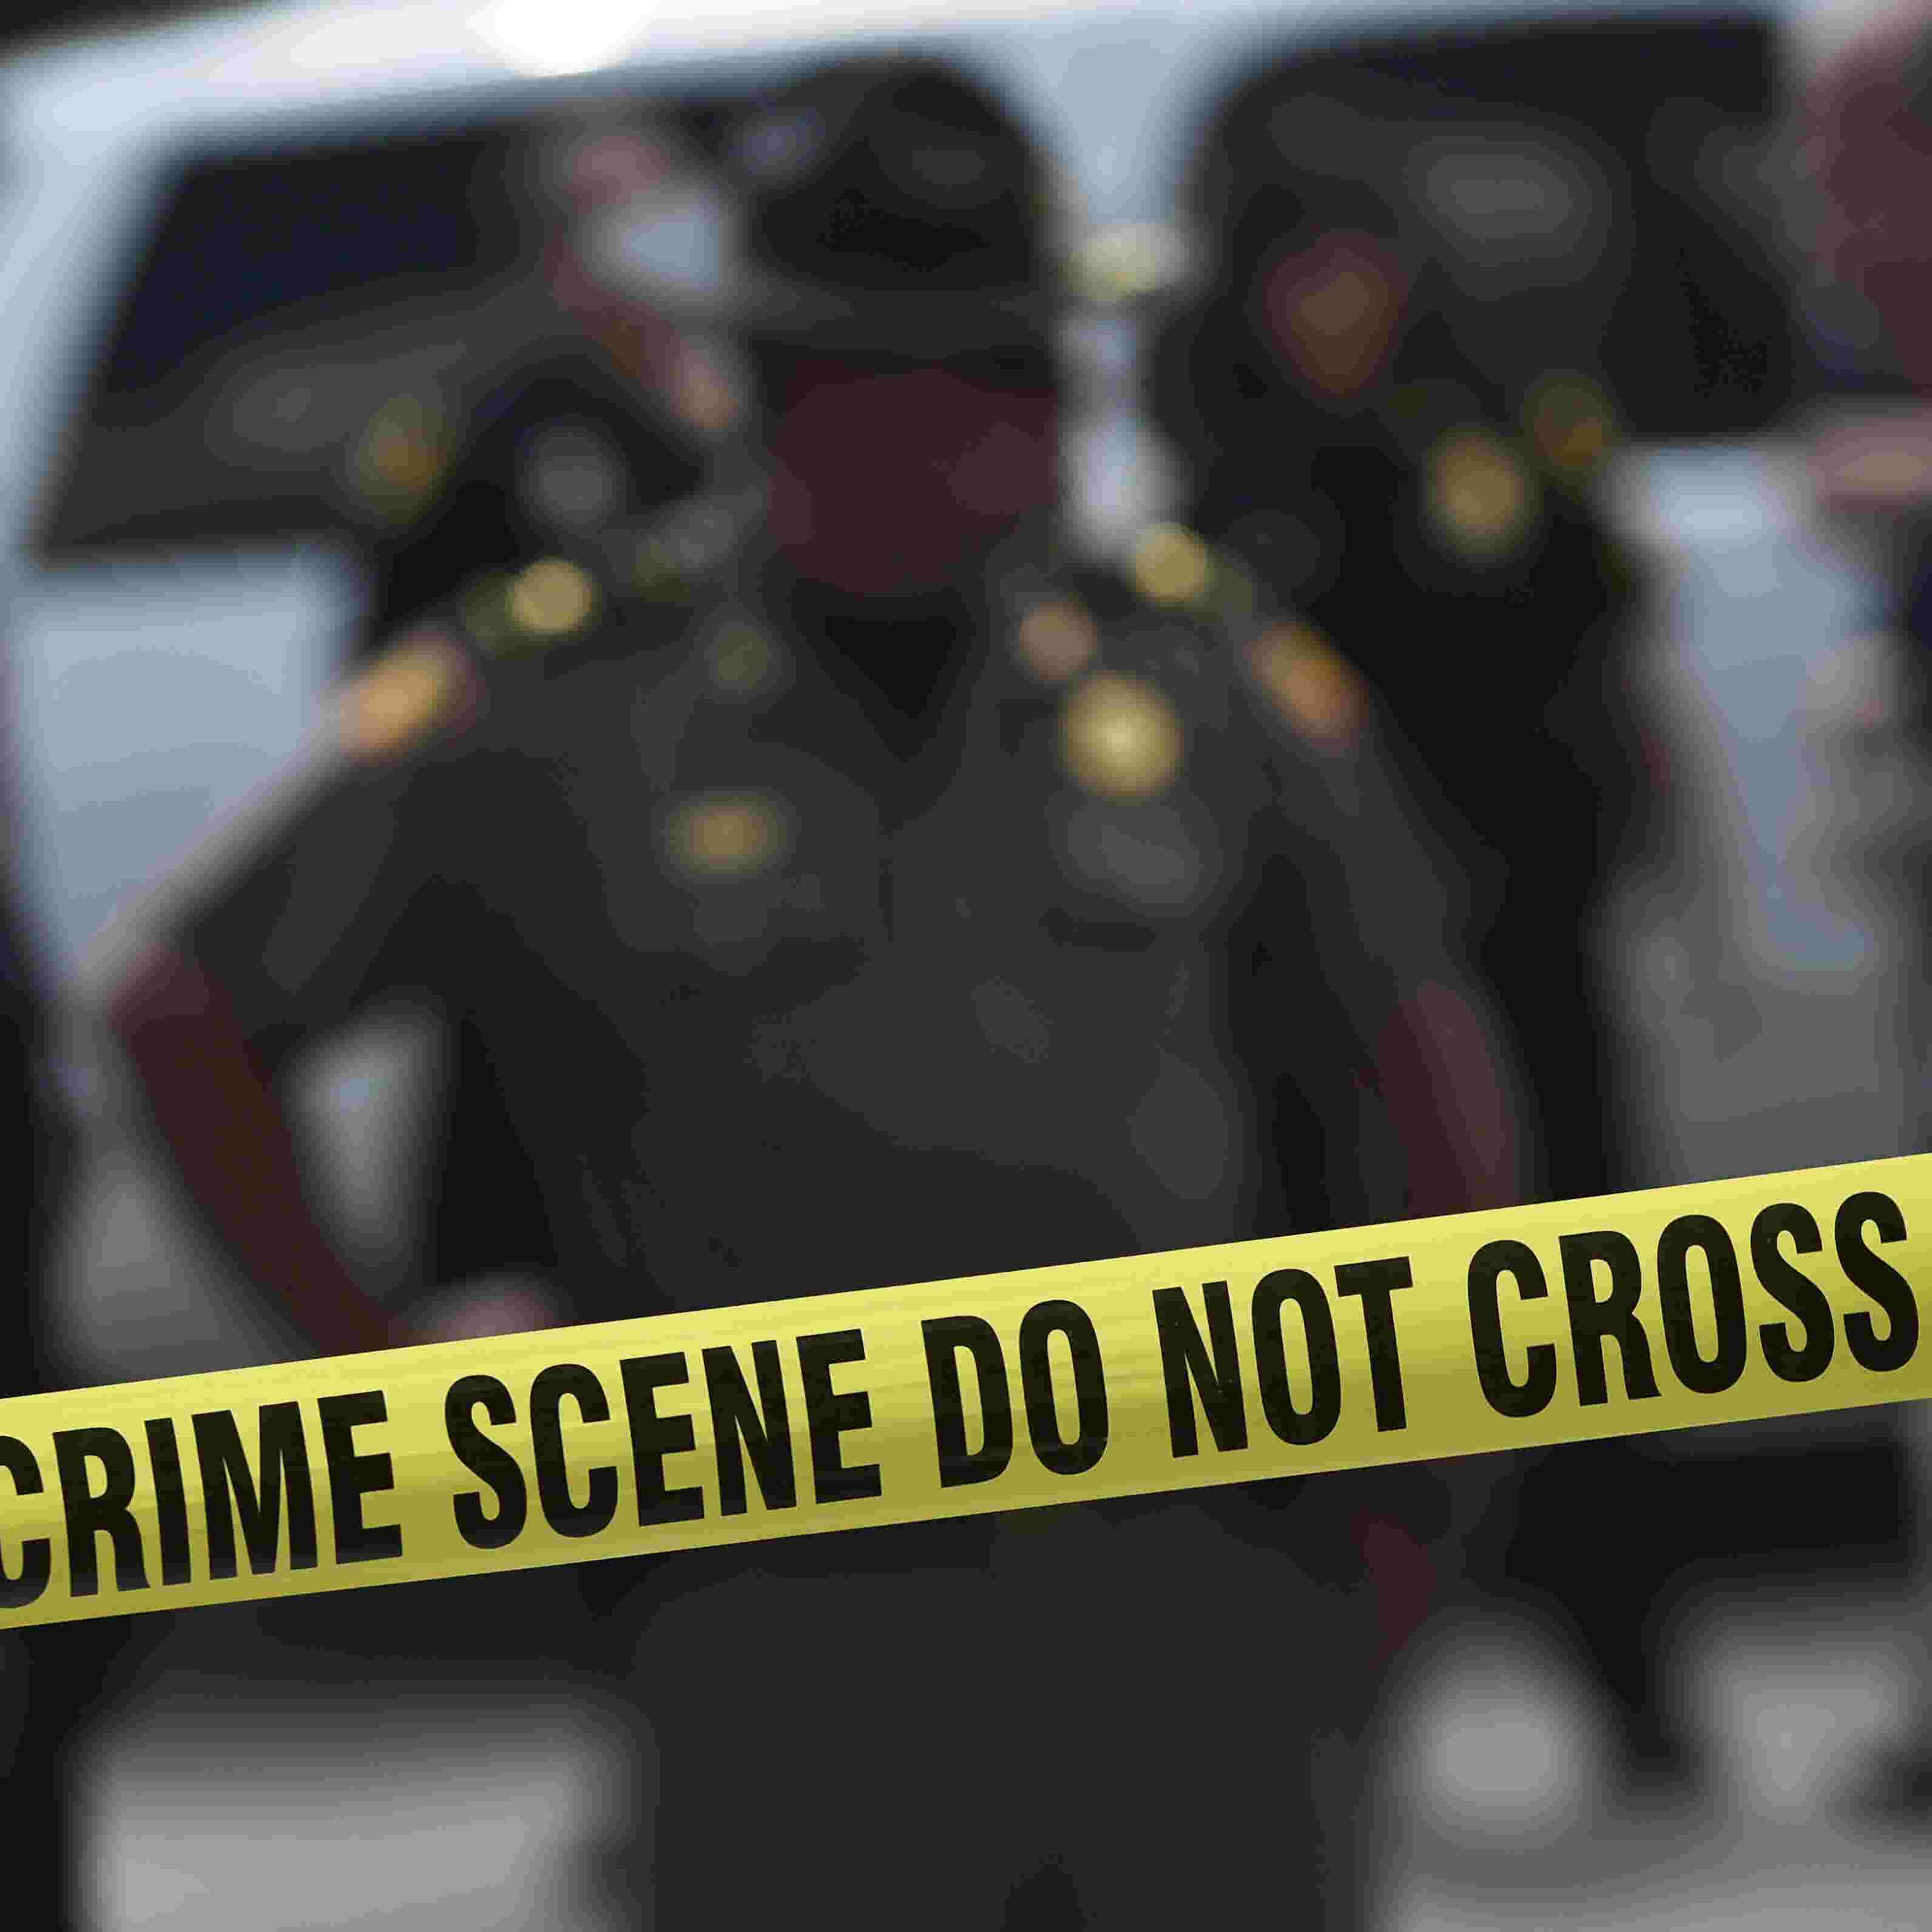 Knoxville, Memphis ranked among Tennessee's least safe cities